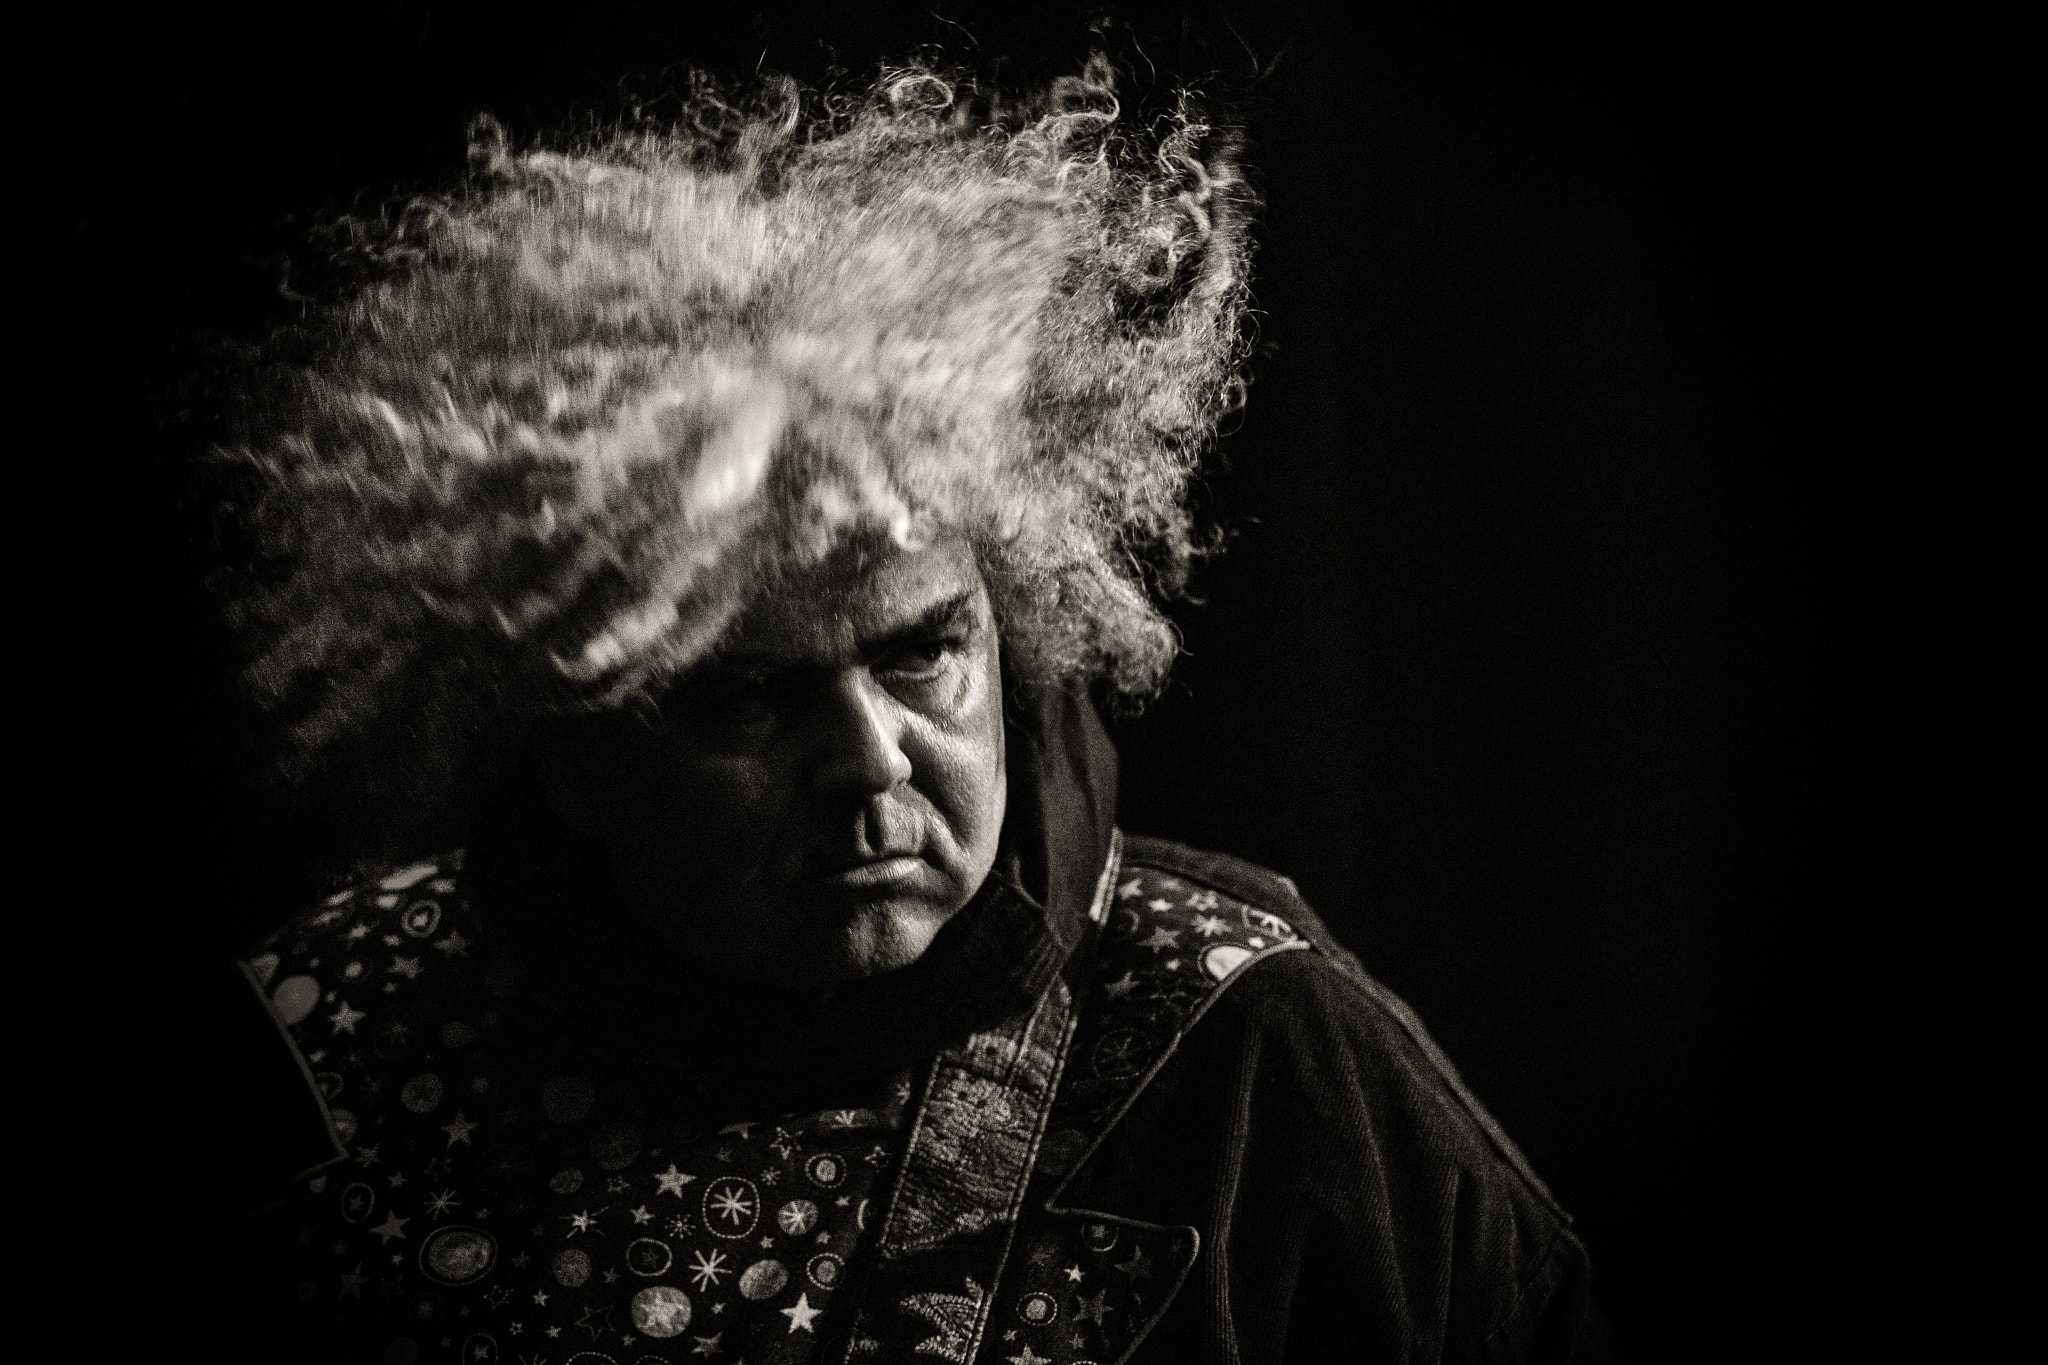 Photograph King Buzzo, Melvins by Andreas Koesler on 500px